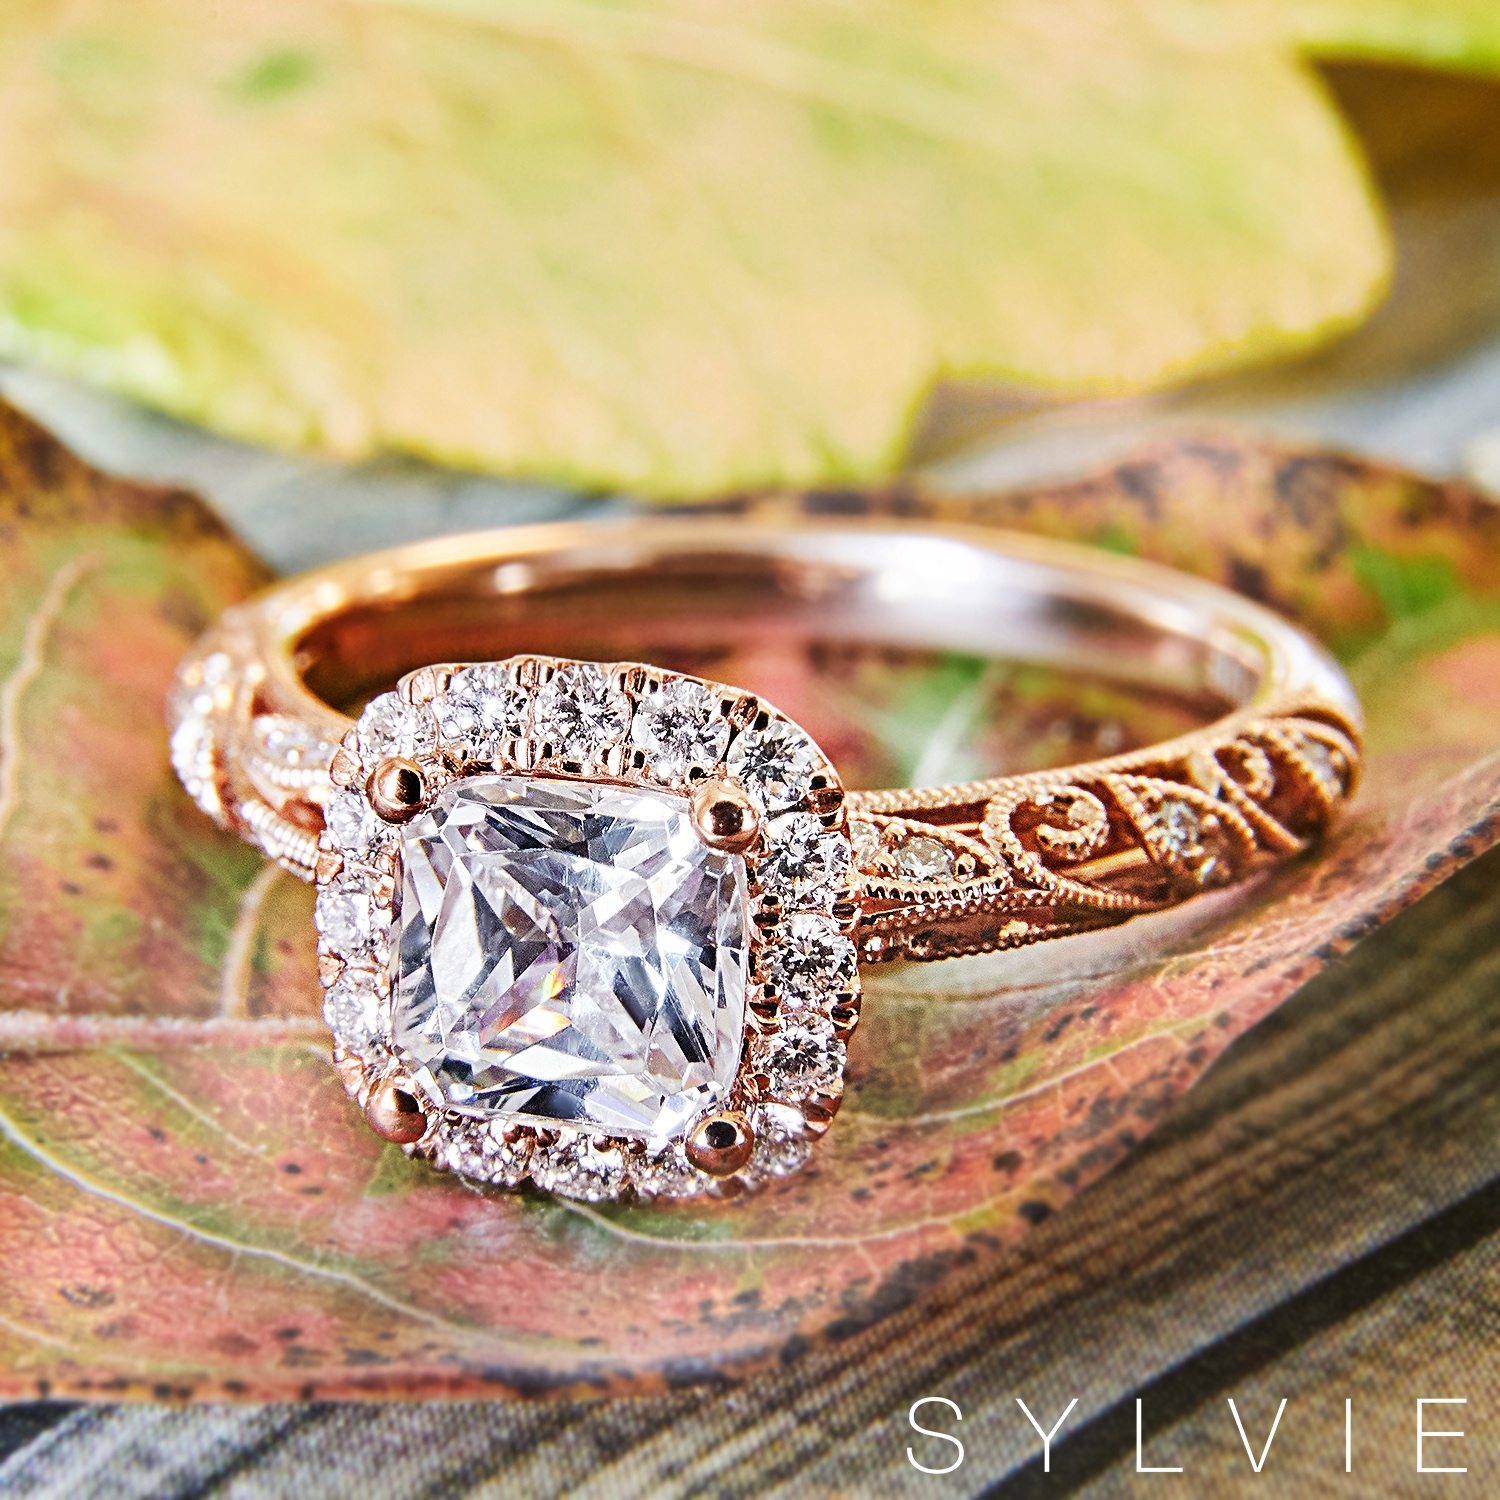 halo-engagement-ring-sylvie-S1747.JPG